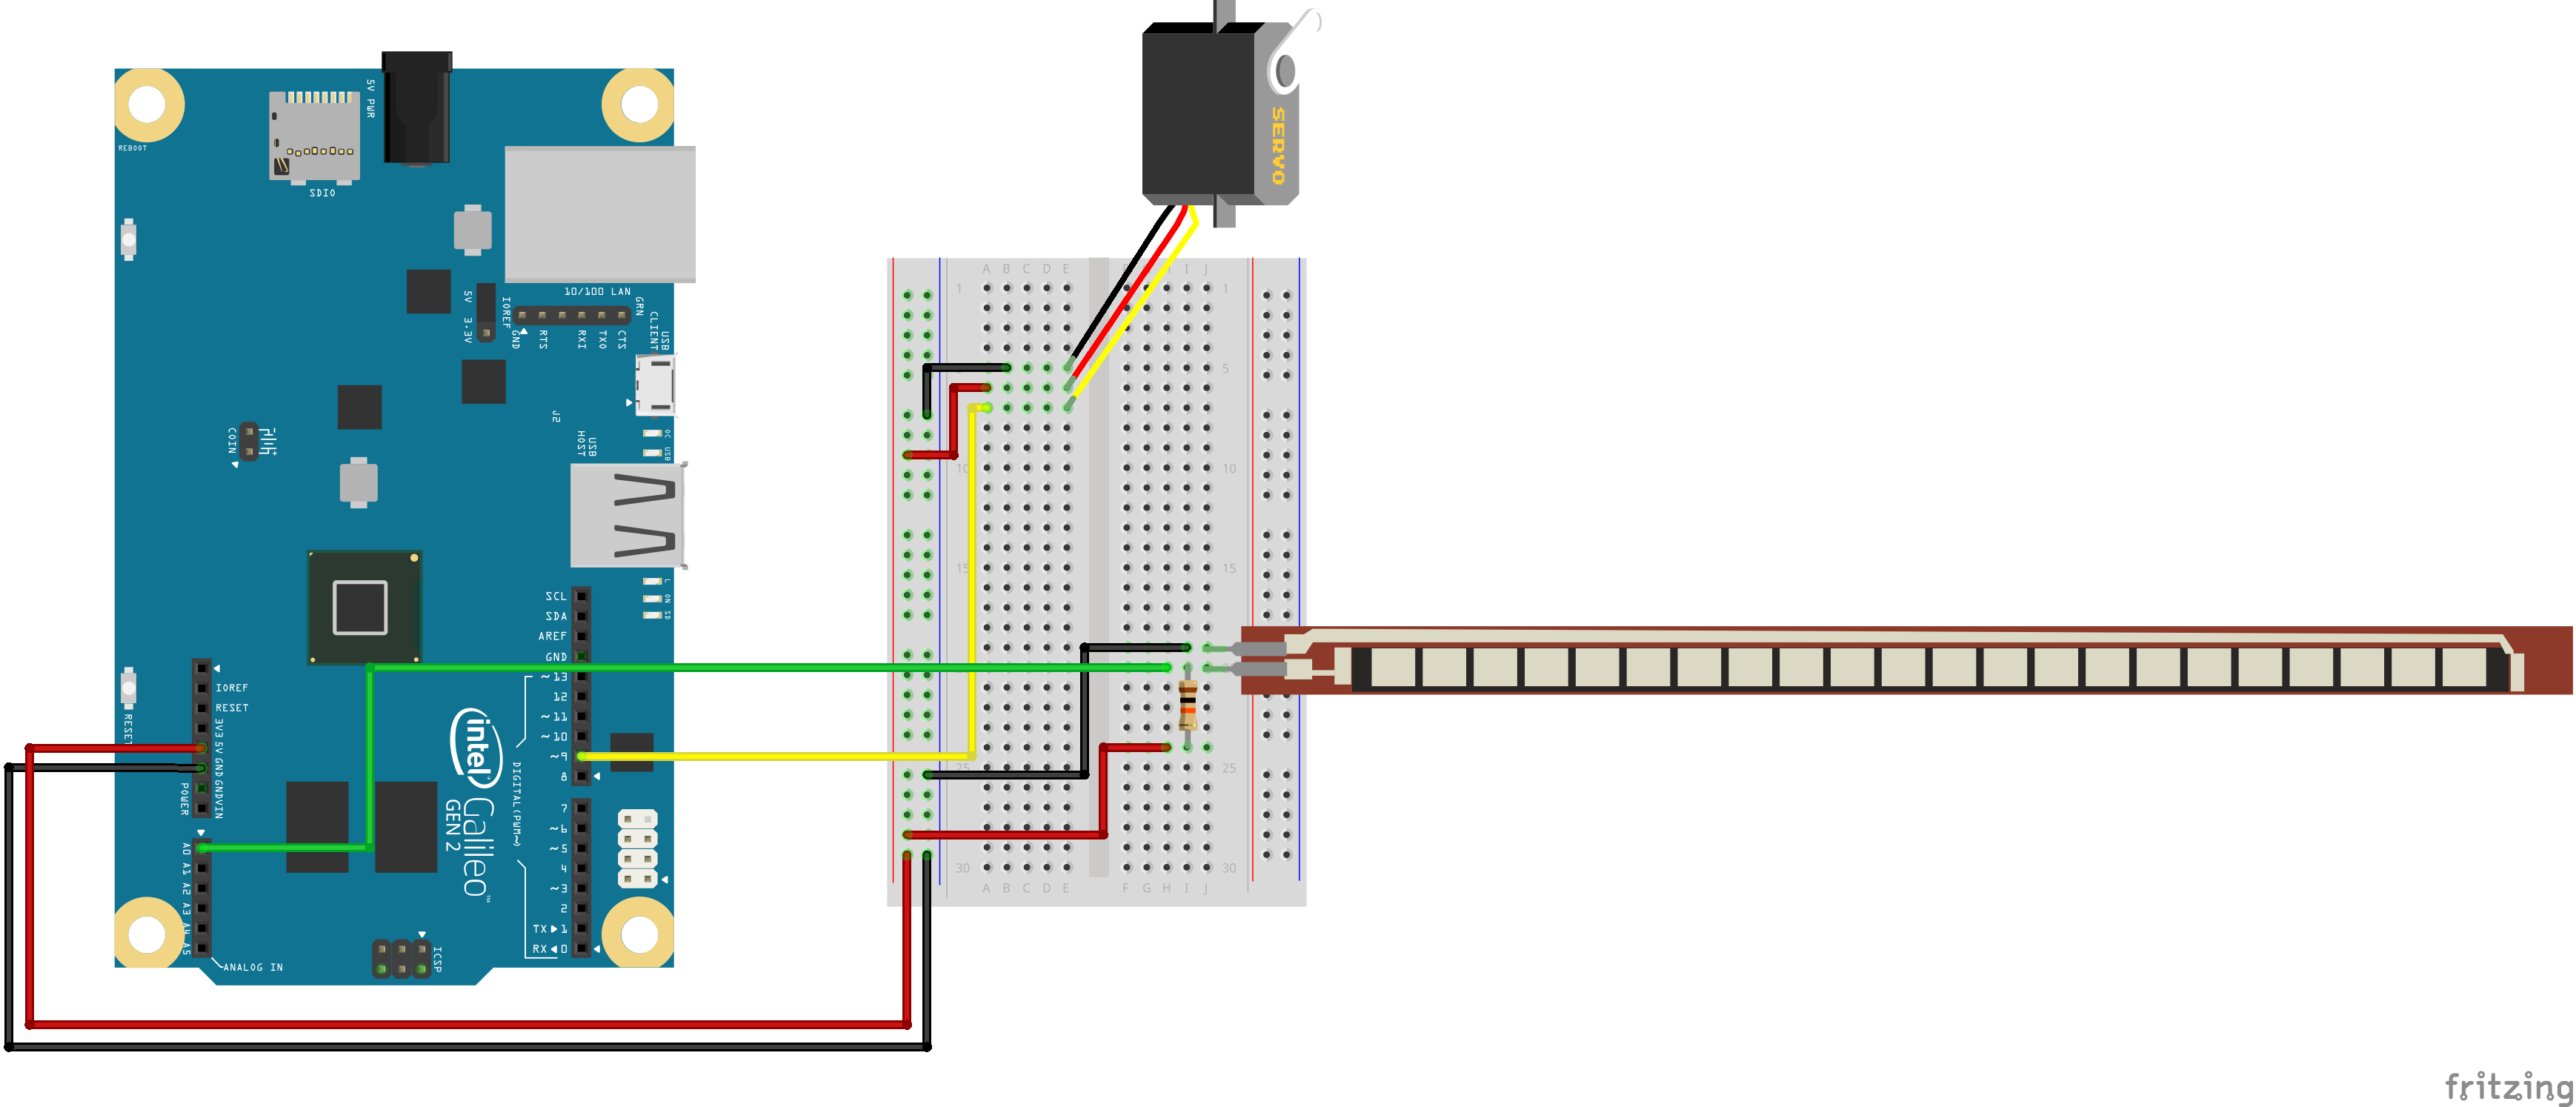 Digital Temperature Sensor Wiring Diagram Galileo Experiment Guide Fritzing Flex